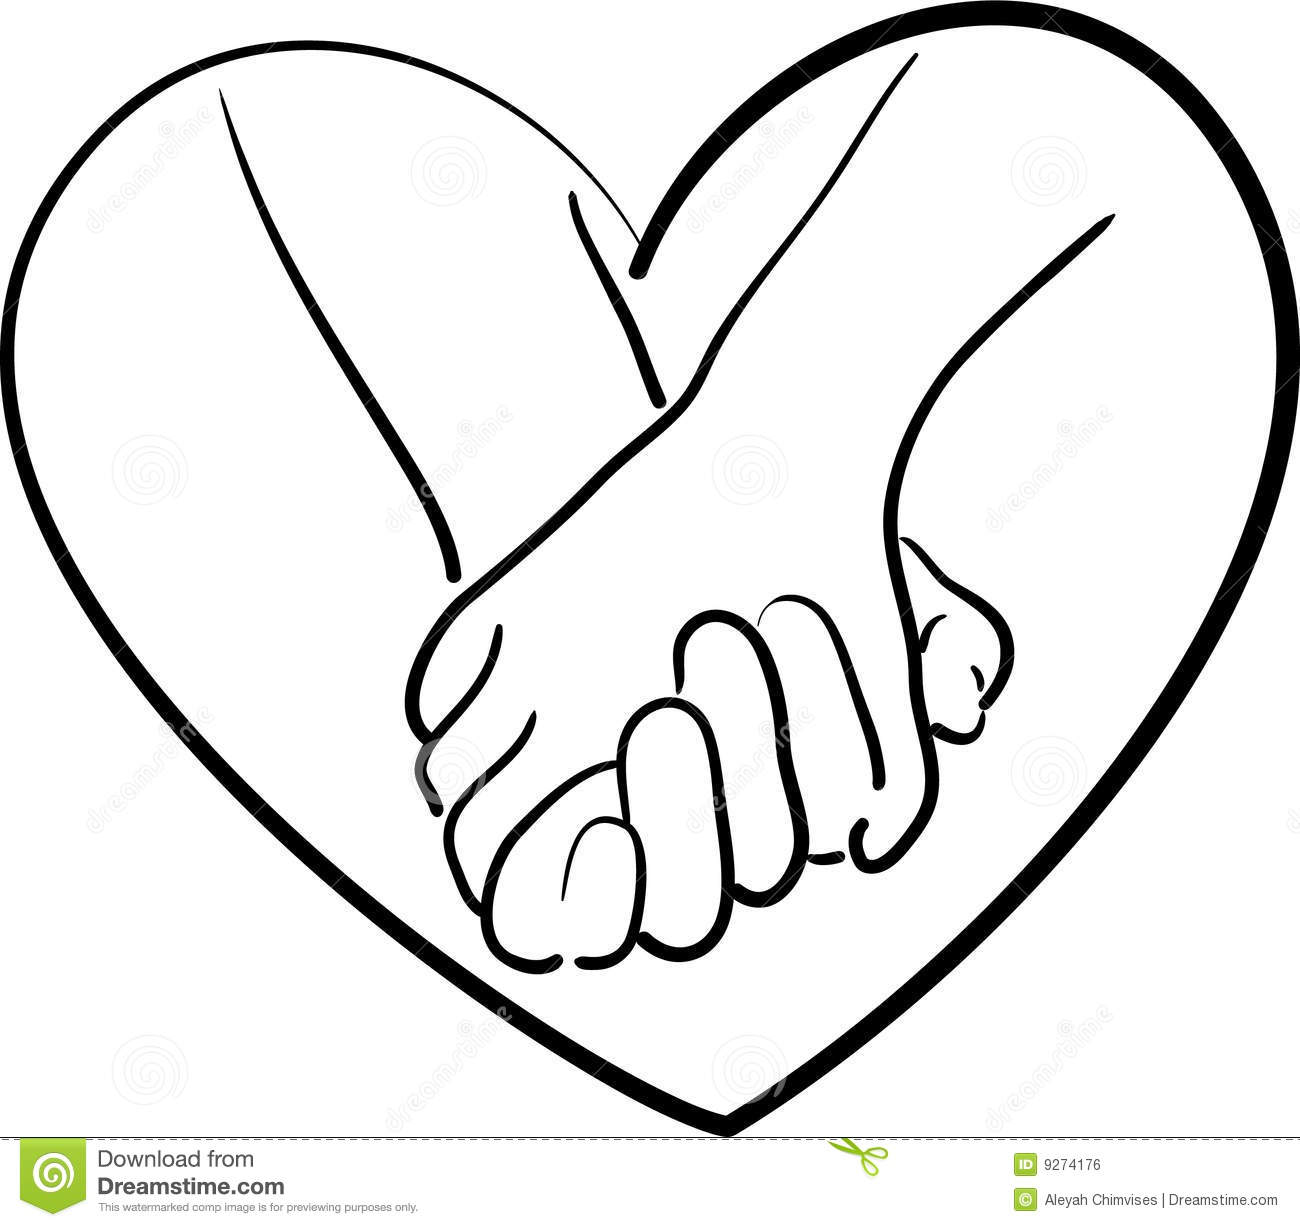 Holding hands clipart free clip art black and white 8+ Holding Hands Clipart   ClipartLook clip art black and white